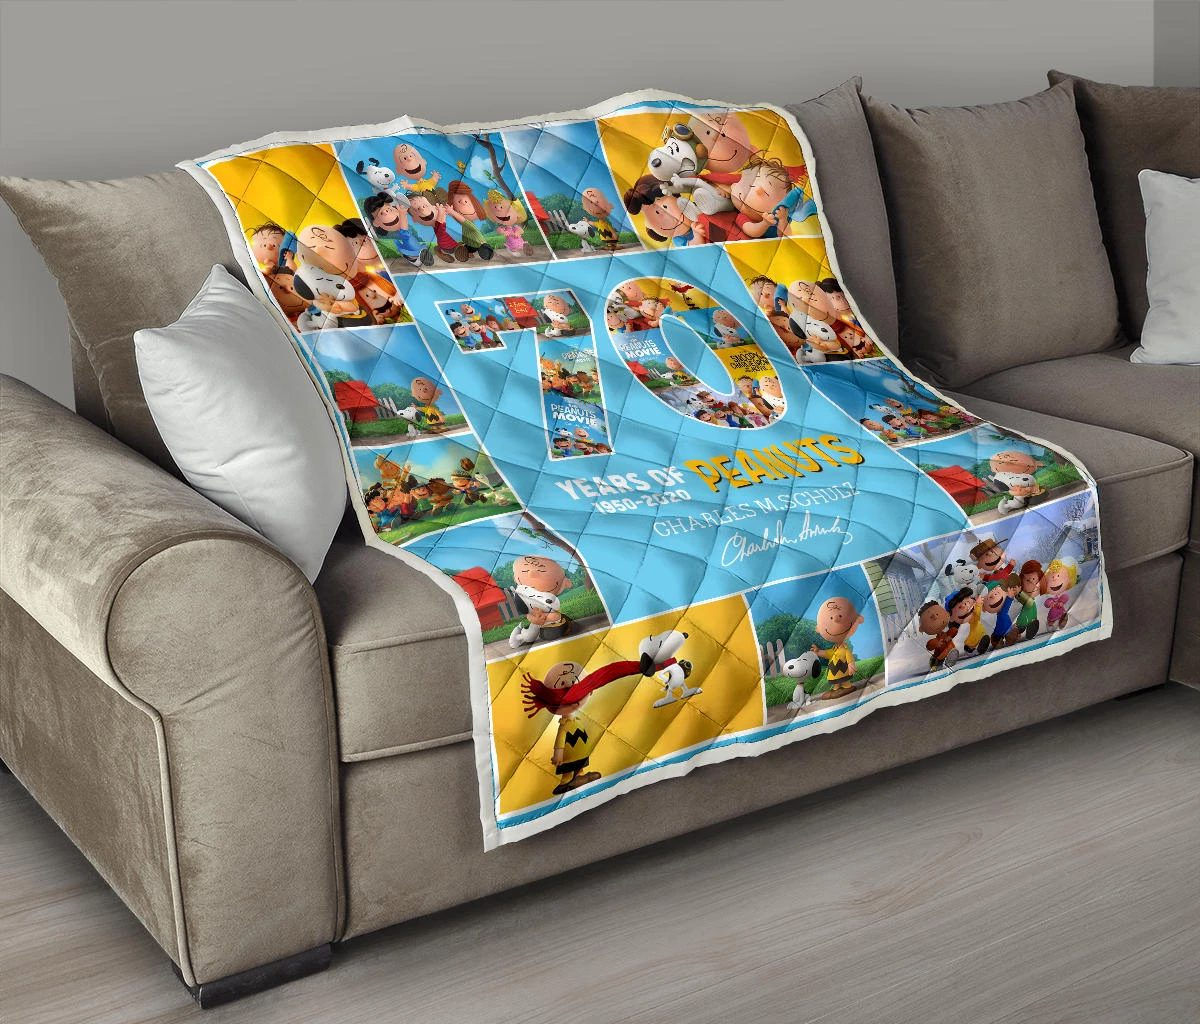 70 years of peanuts charles m schulz quilt - maria